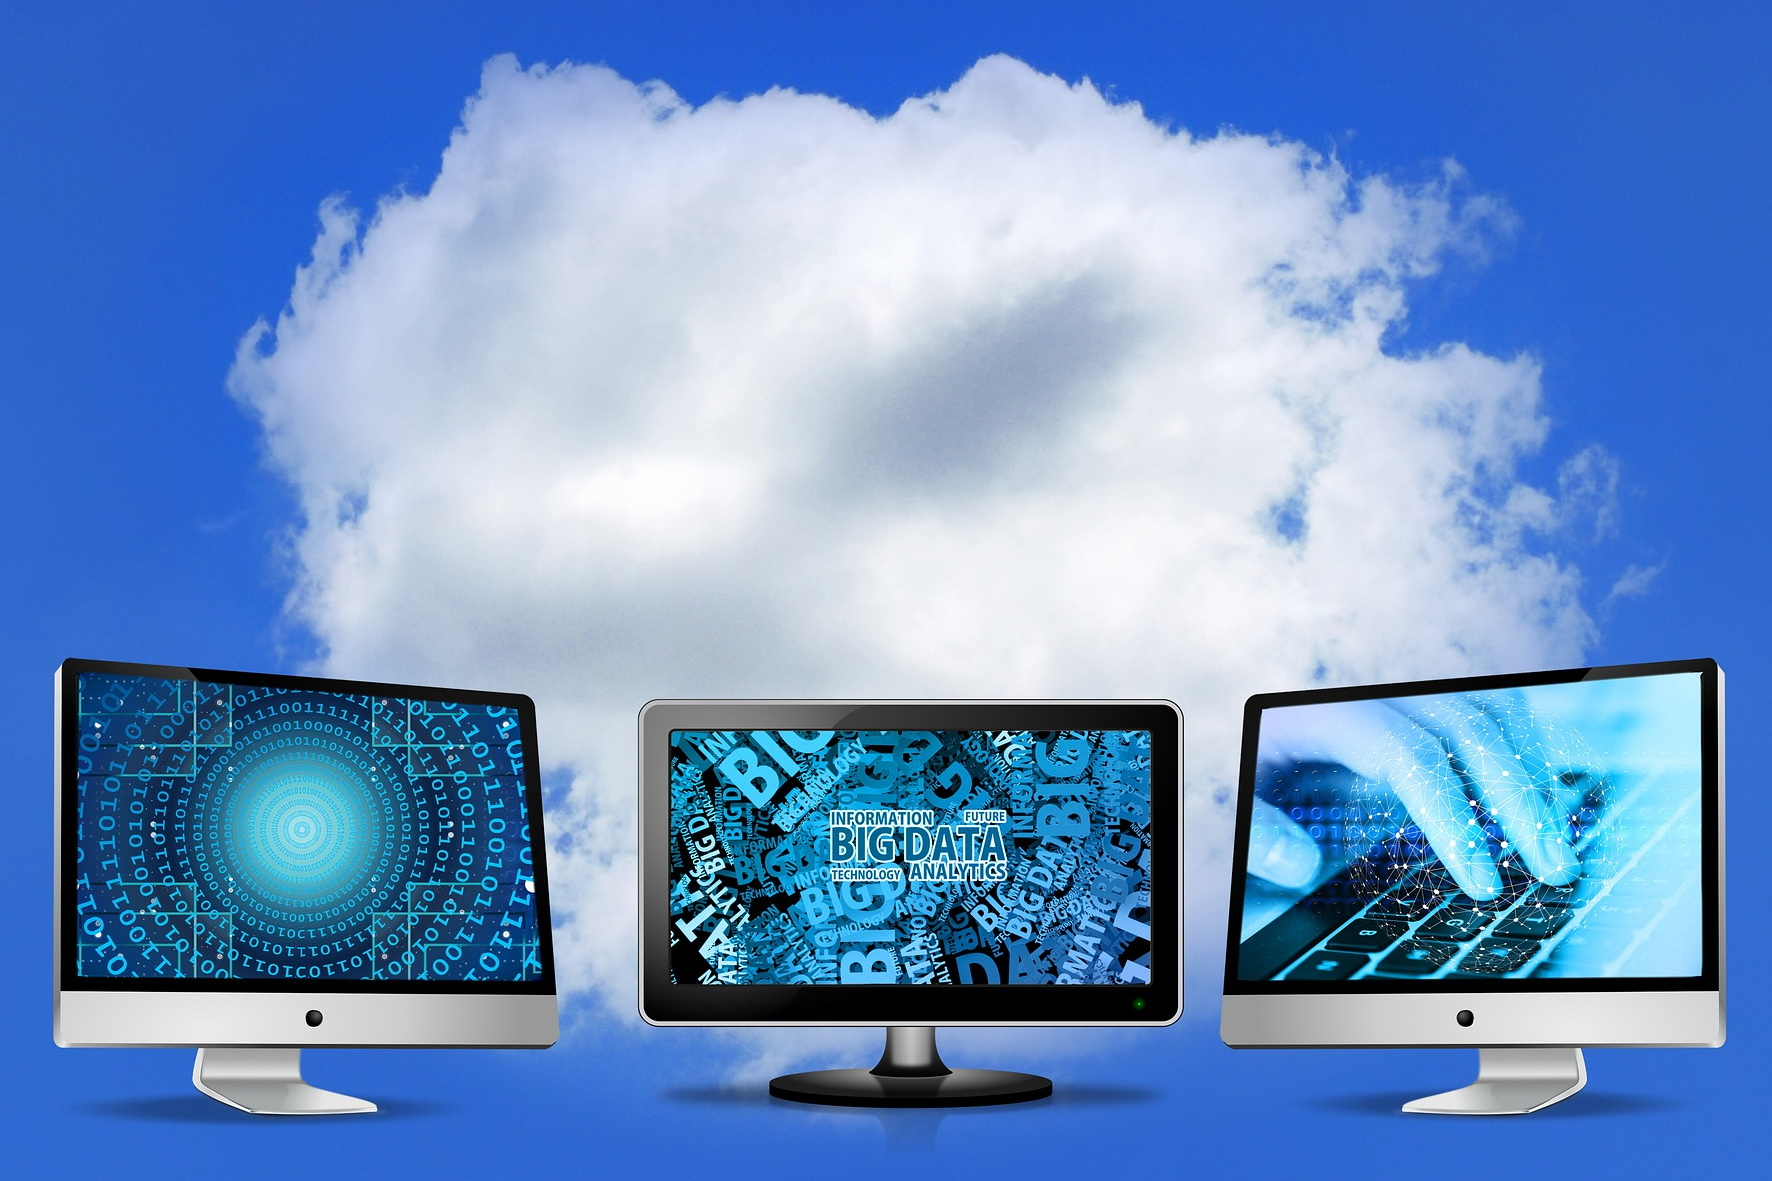 IT Modernization with Cloud Computing